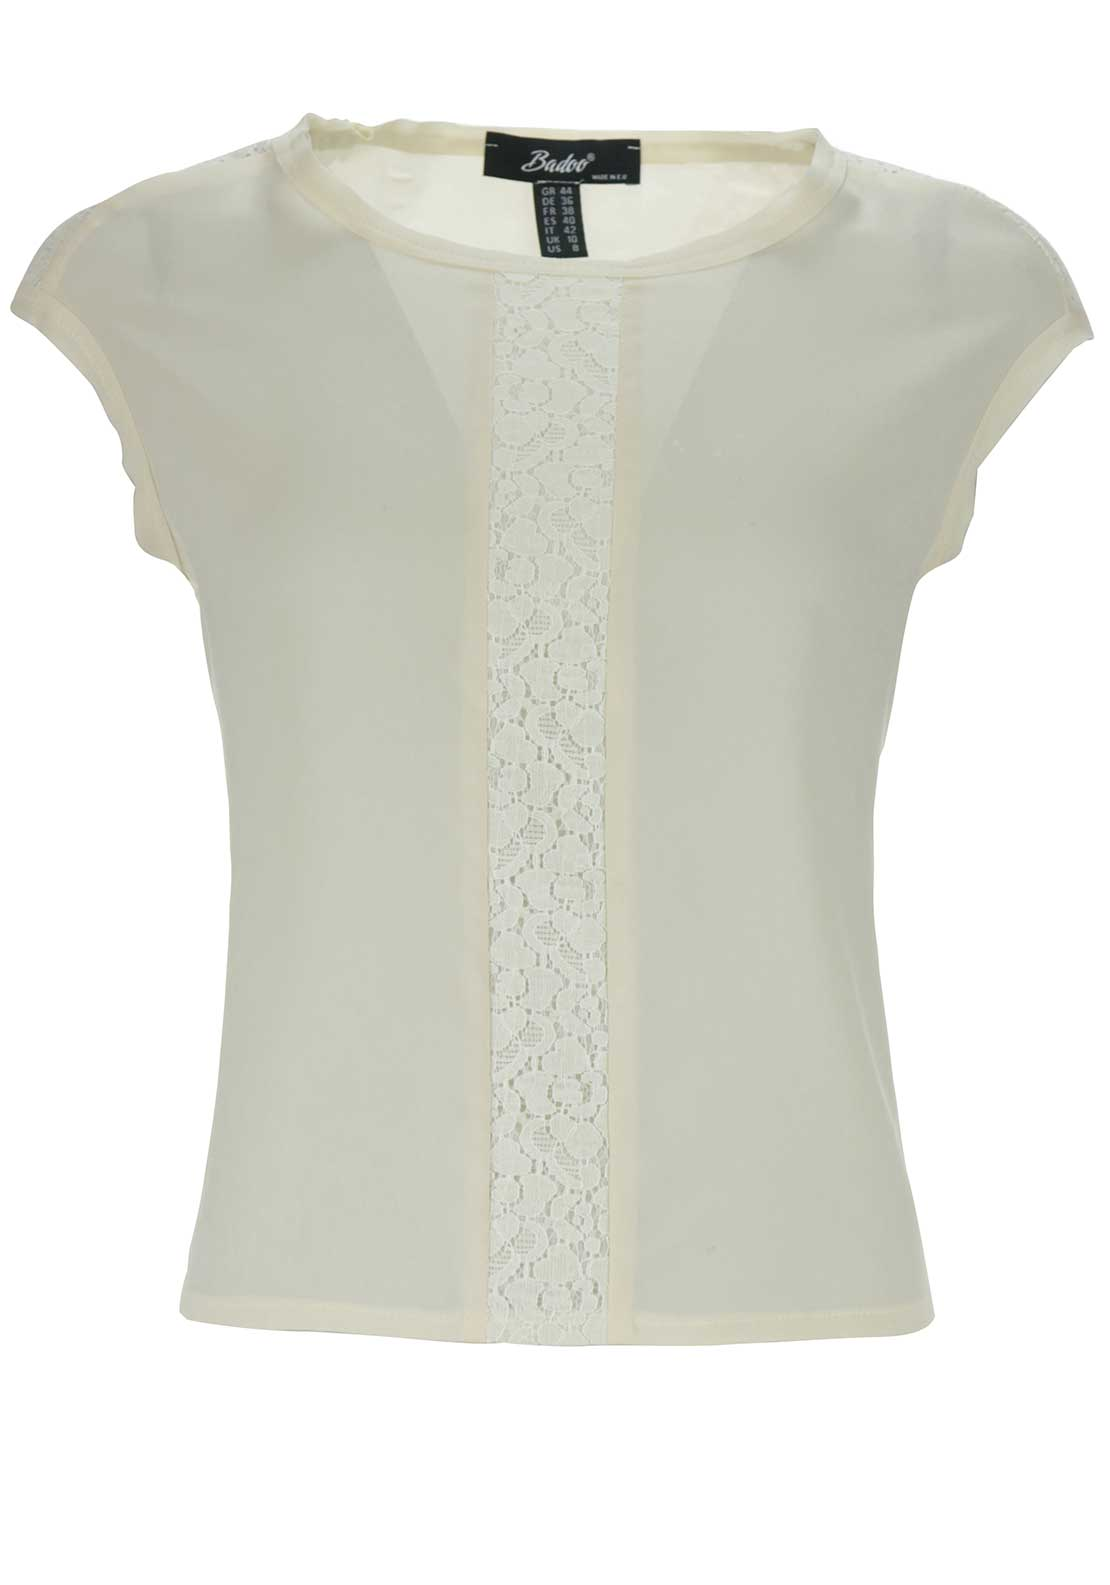 Badoo Lace Trim Cap Sleeve Top, Cream